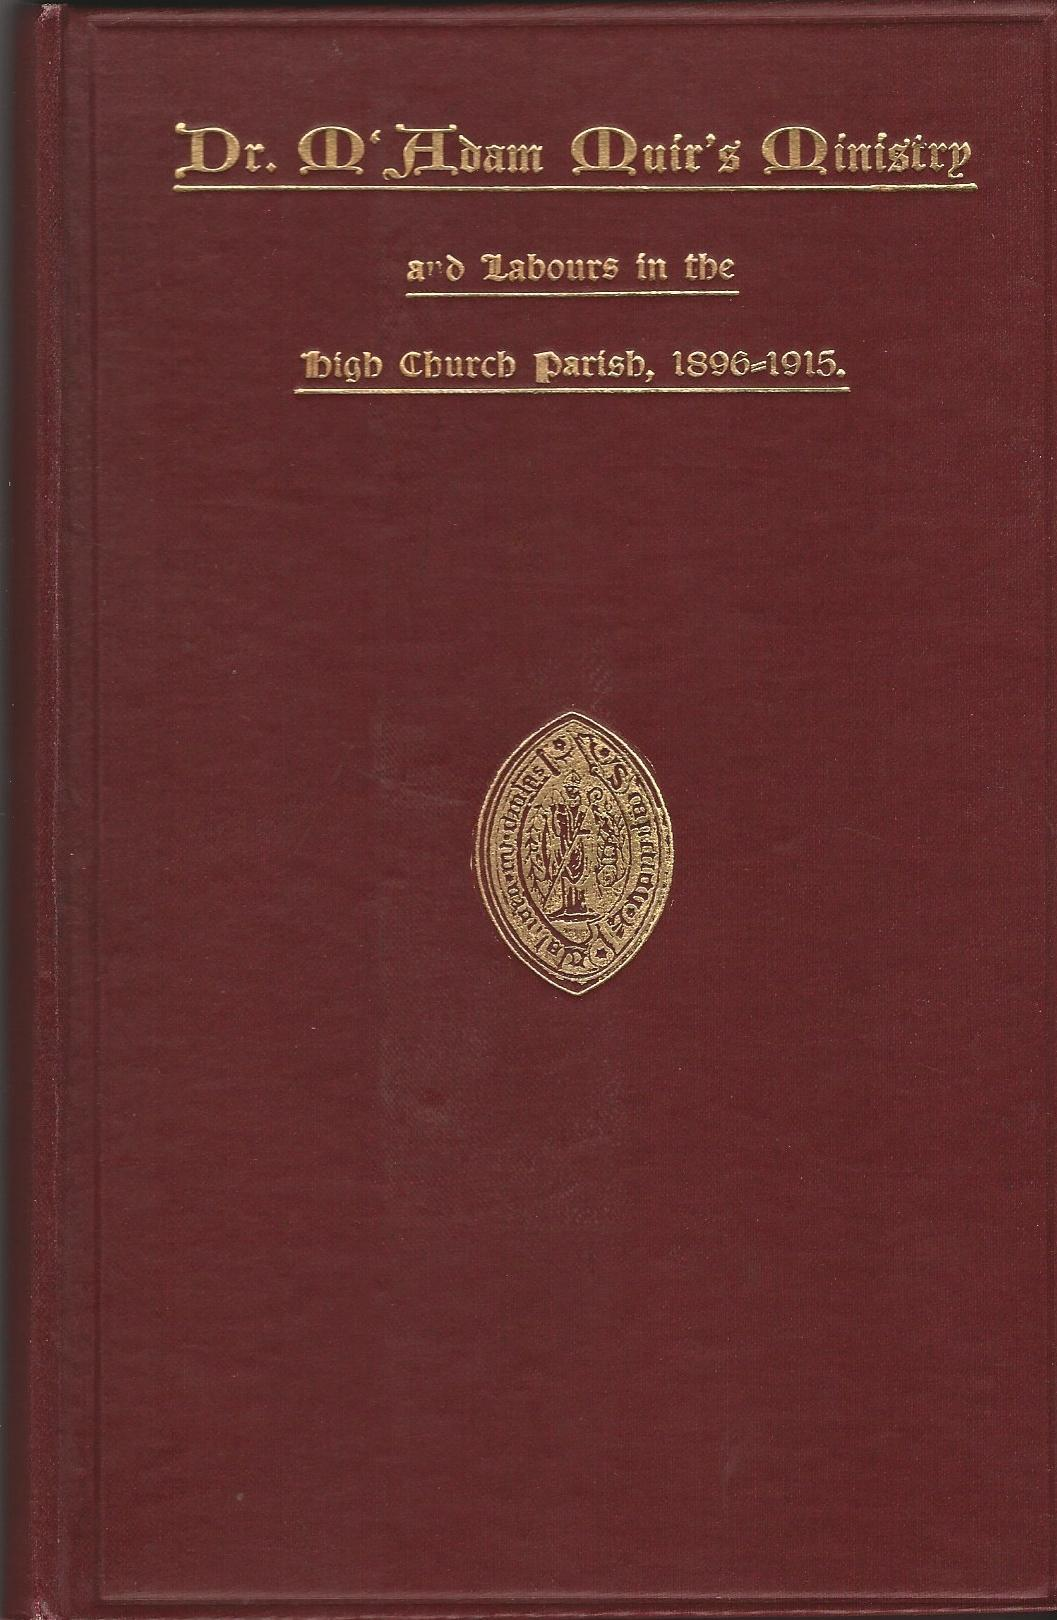 Image for Dr. M'Adam Muir's Ministry and Labours in the High Church Parish 1896-1915.